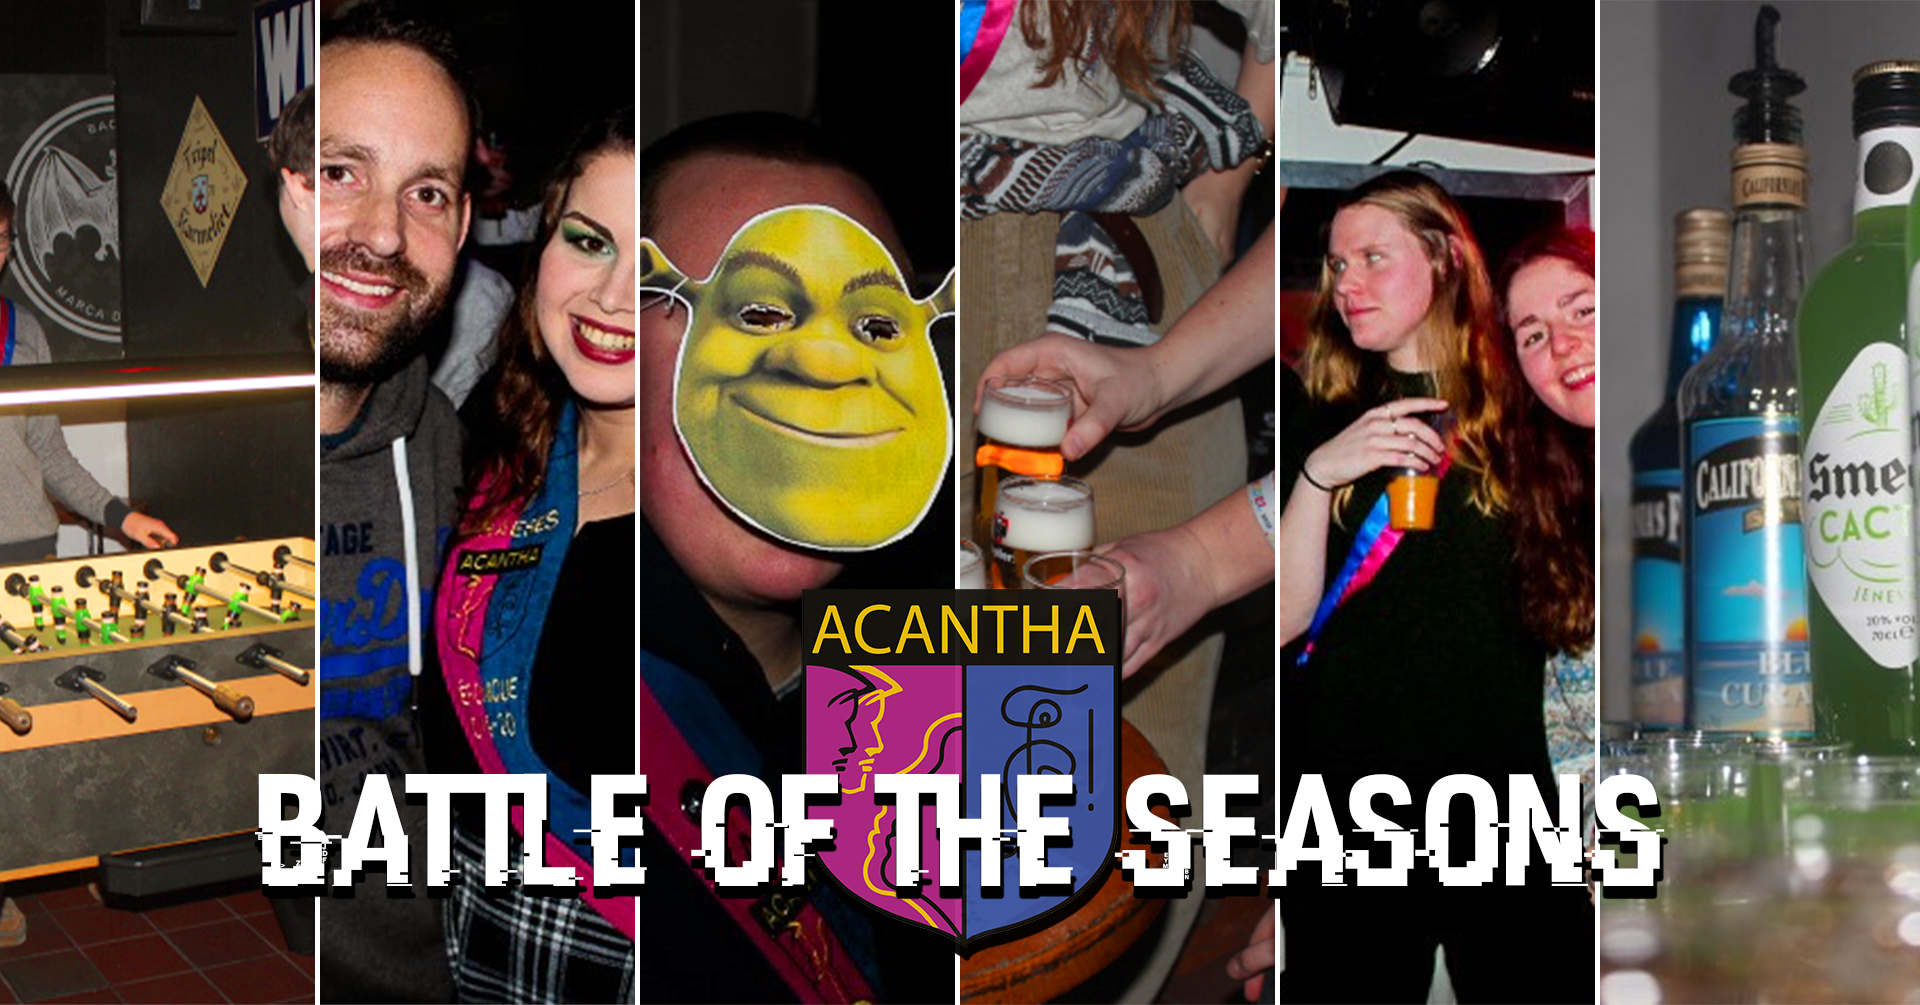 Battle of the Seasons Acantha event